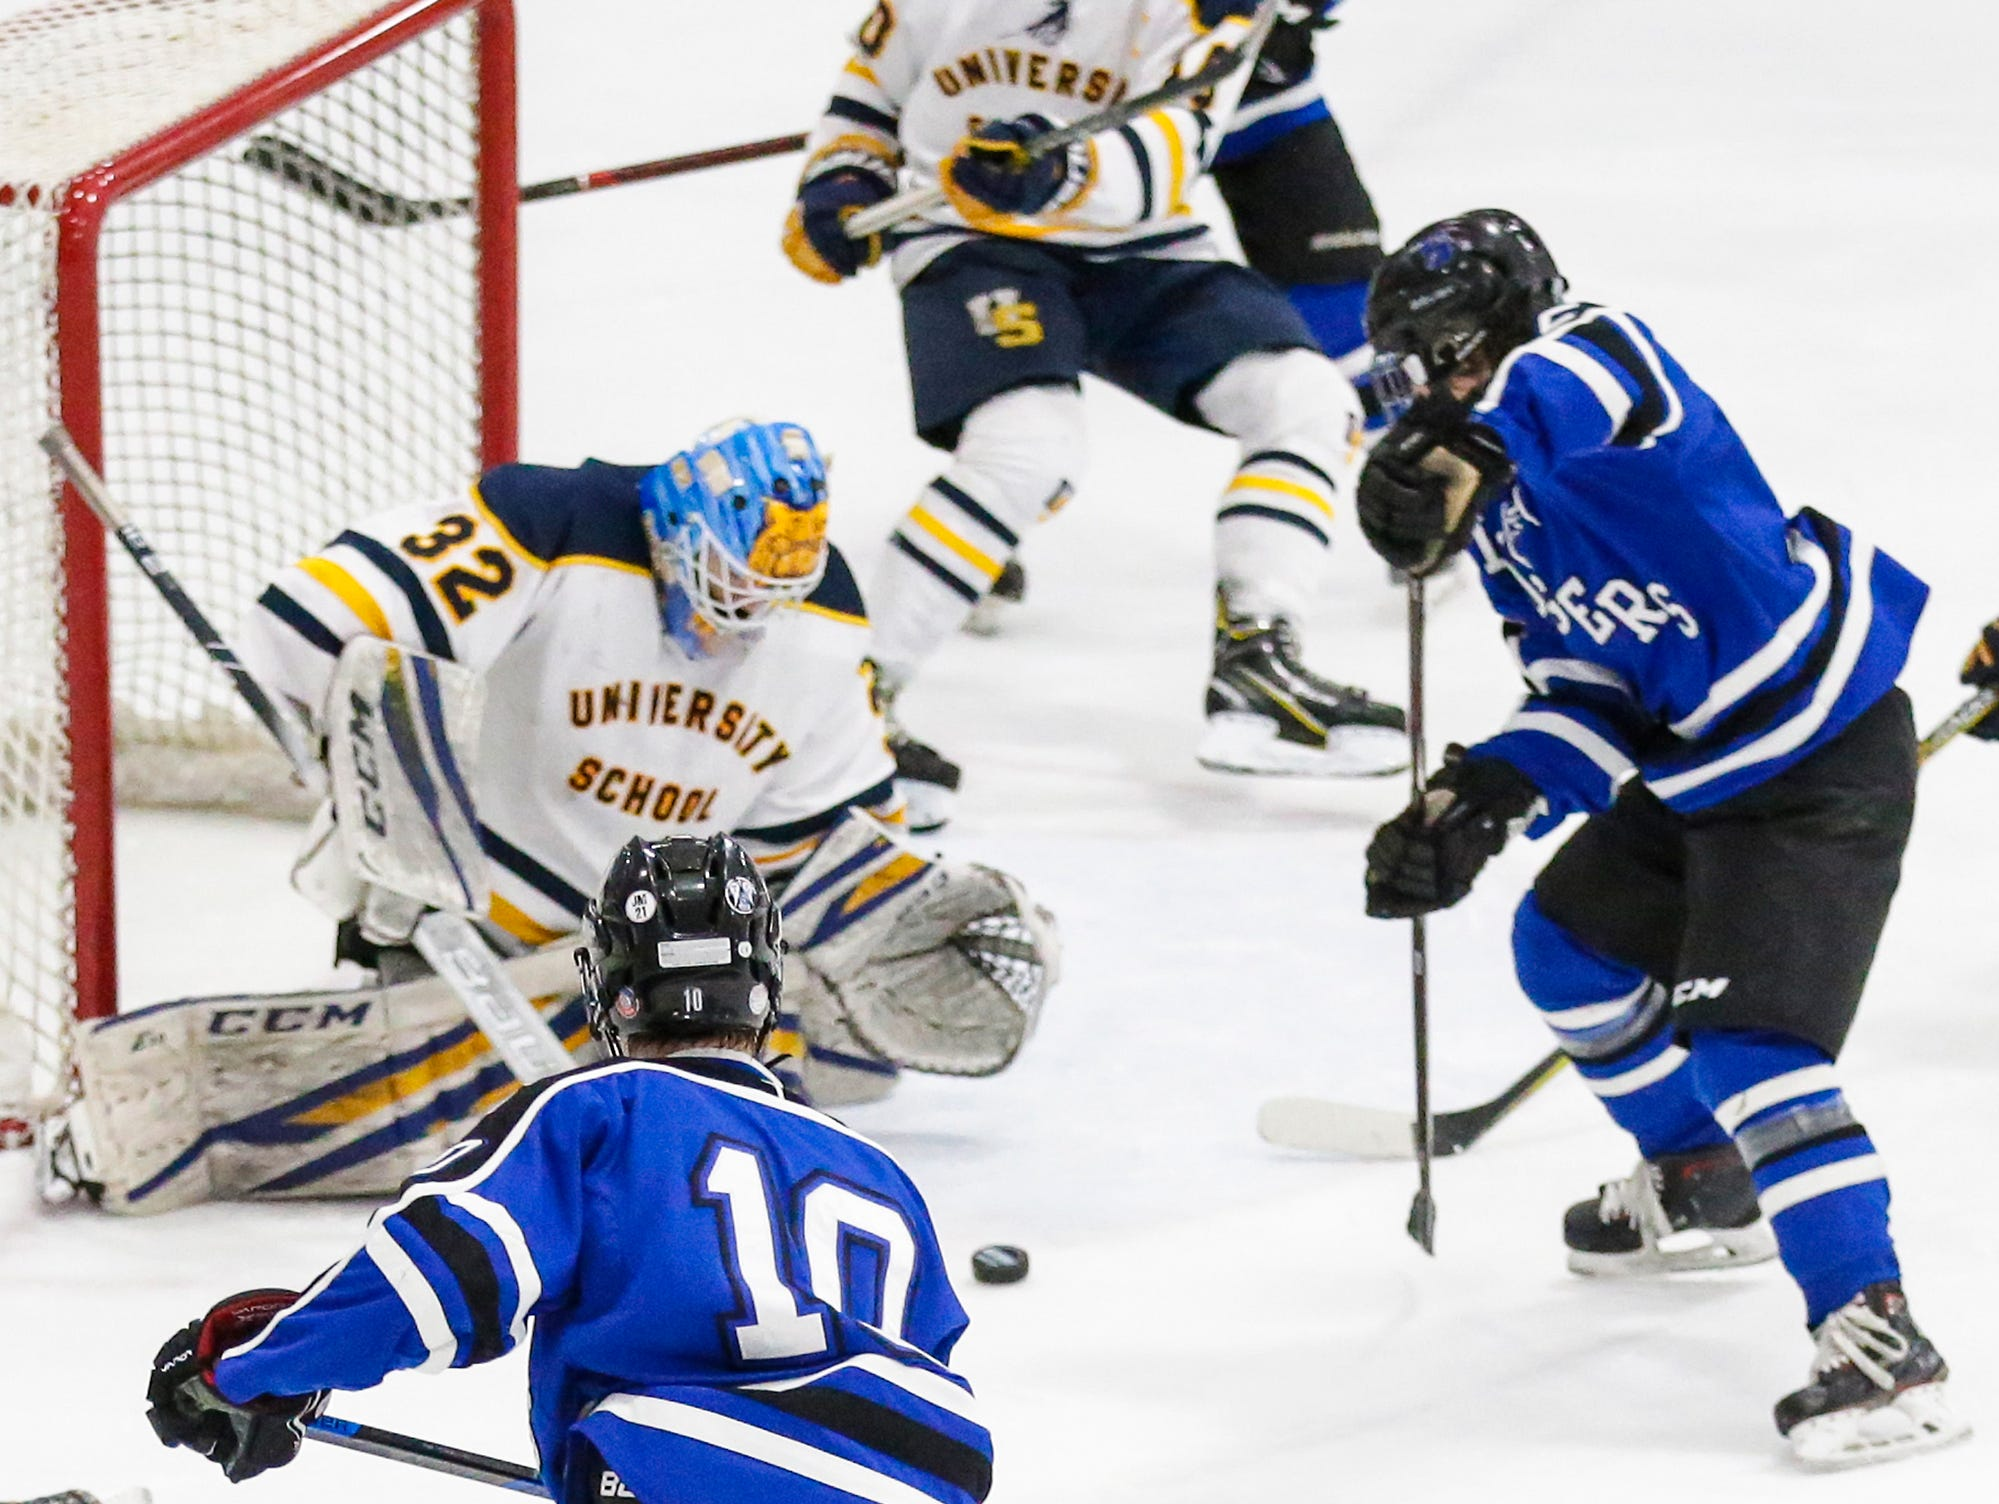 St. Mary's Springs boys co-op hockey's Dayne Deanovich (10) and Brady Welsch (5) try to get the puck past University School of Milwaukee goalie Patrick Kelly Friday, February 22, 2019 during their WIAA sectional final game in Fond du Lac. University School won the game 6-1 and will advance to state. Doug Raflik/USA TODAY NETWORK-Wisconsin